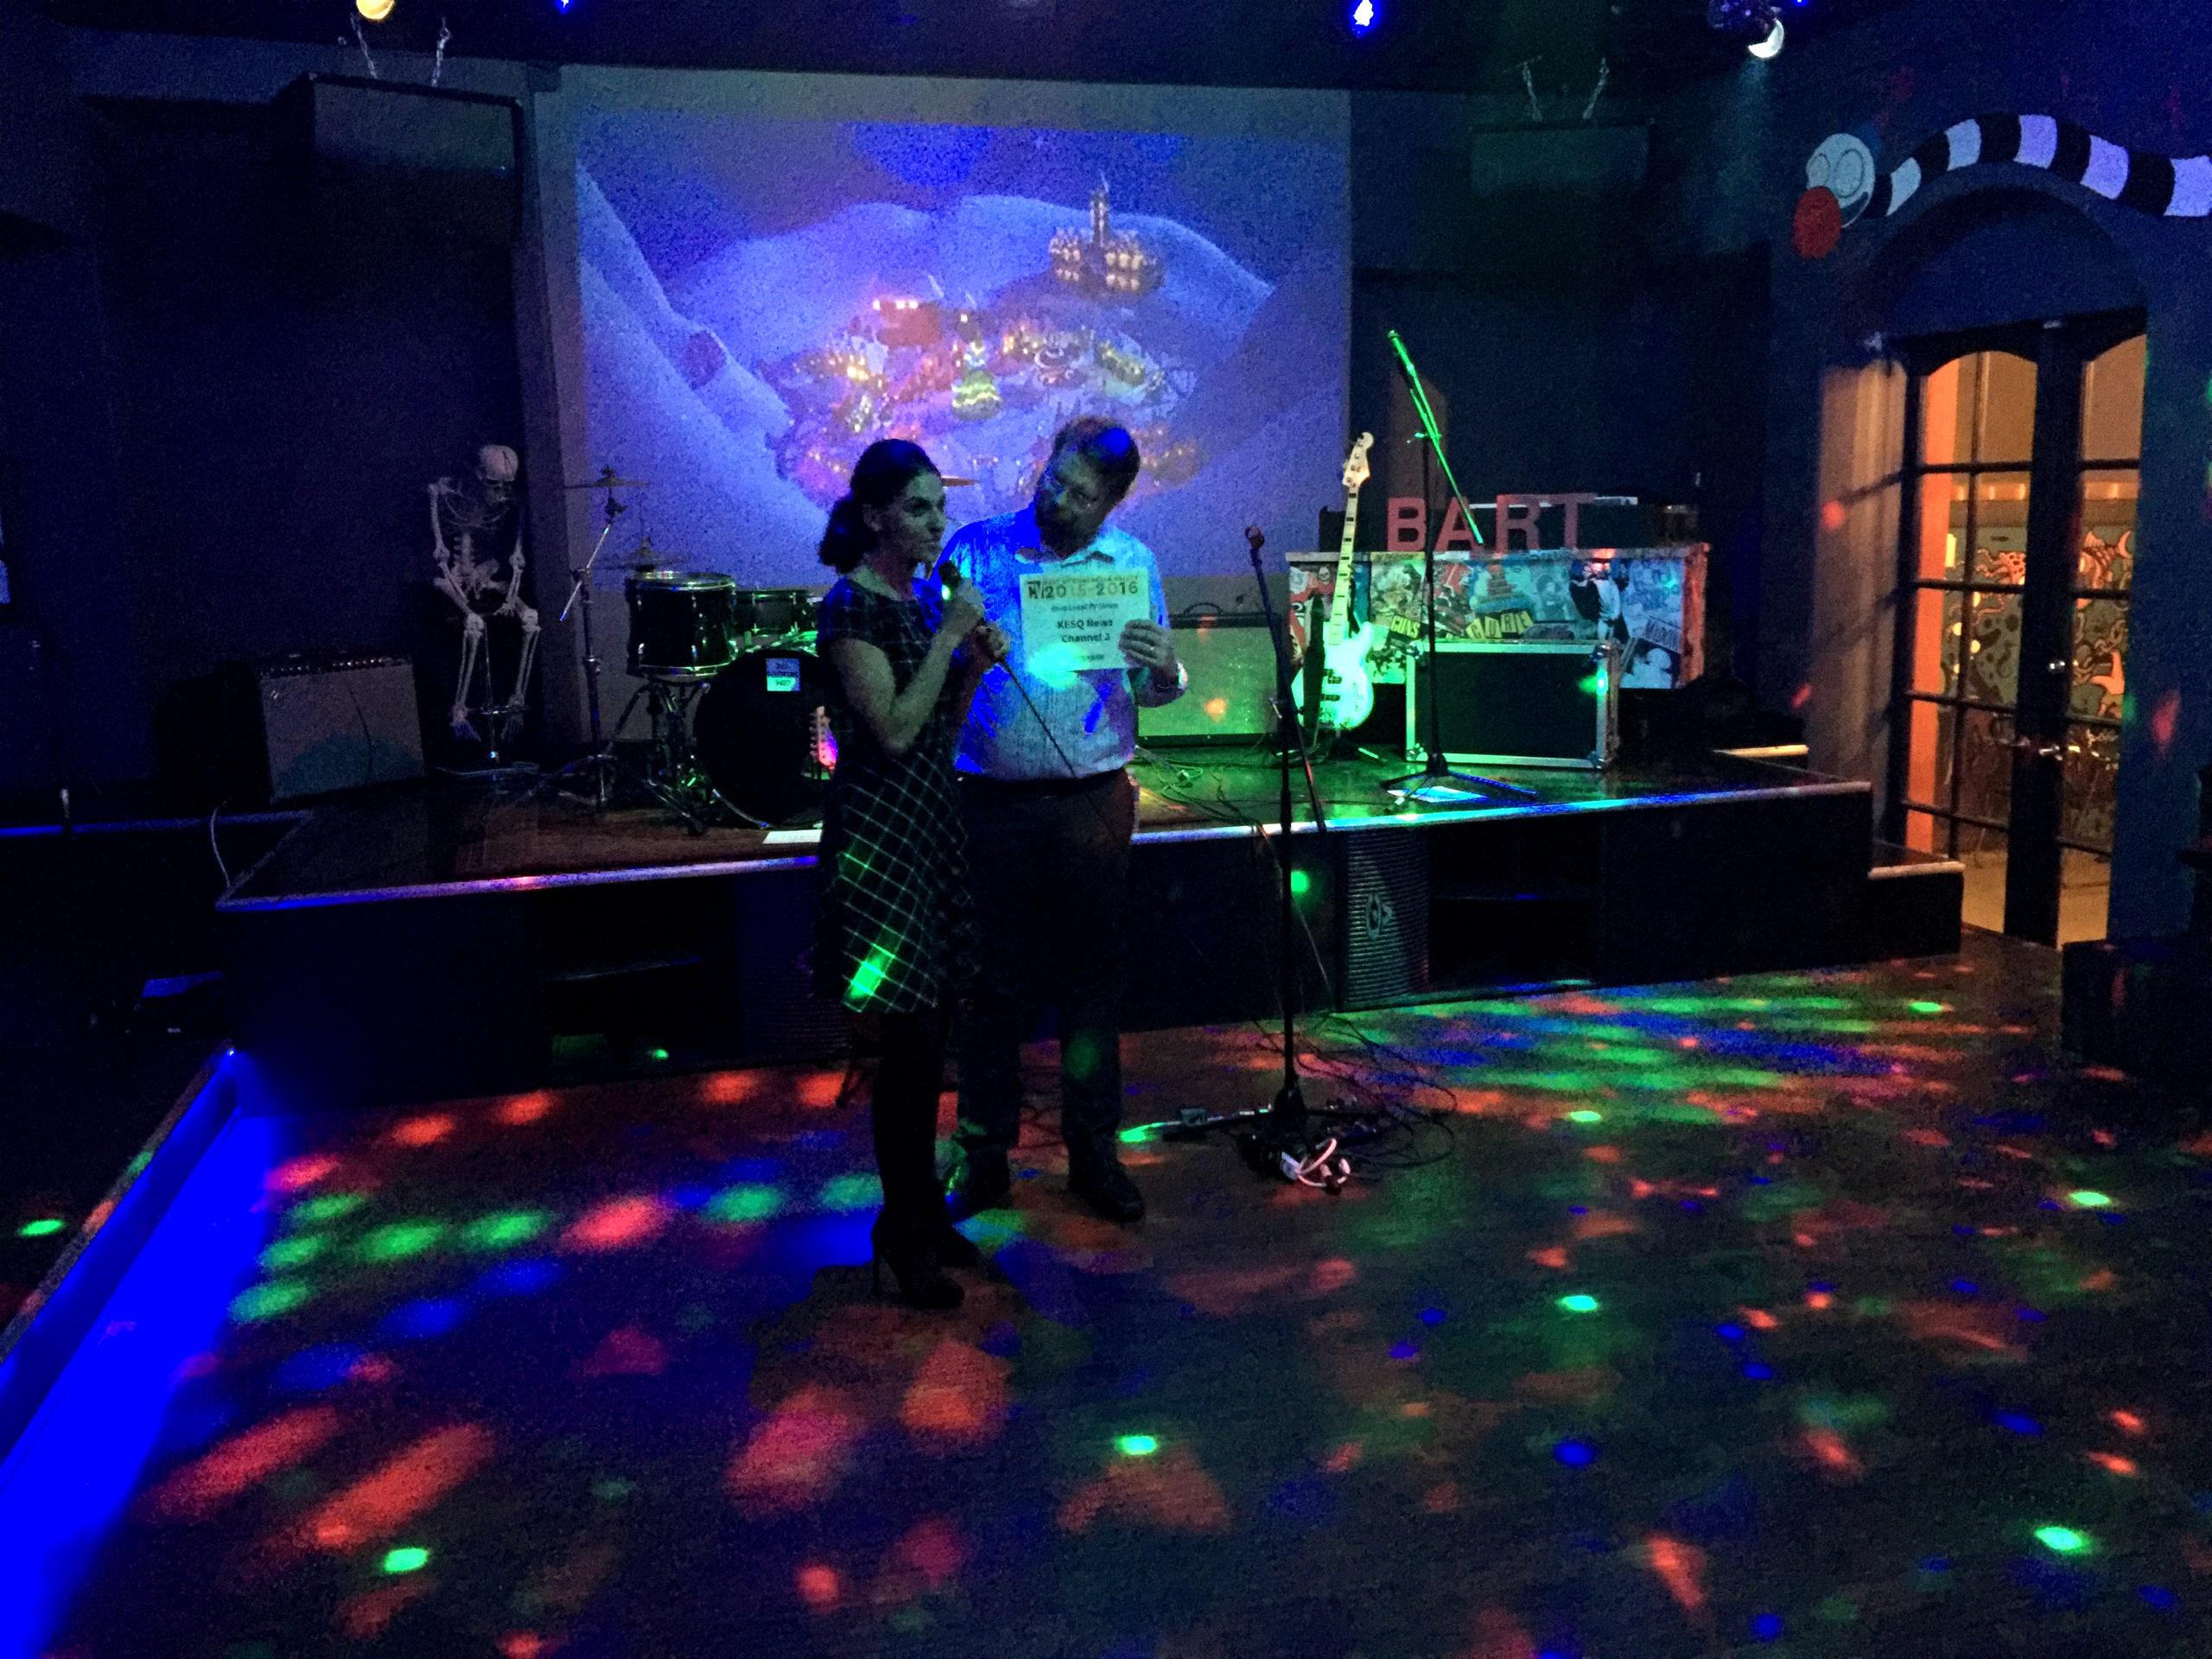 images/Best of Coachella Valley Party 2015-2016/NEWS snapshot bianca